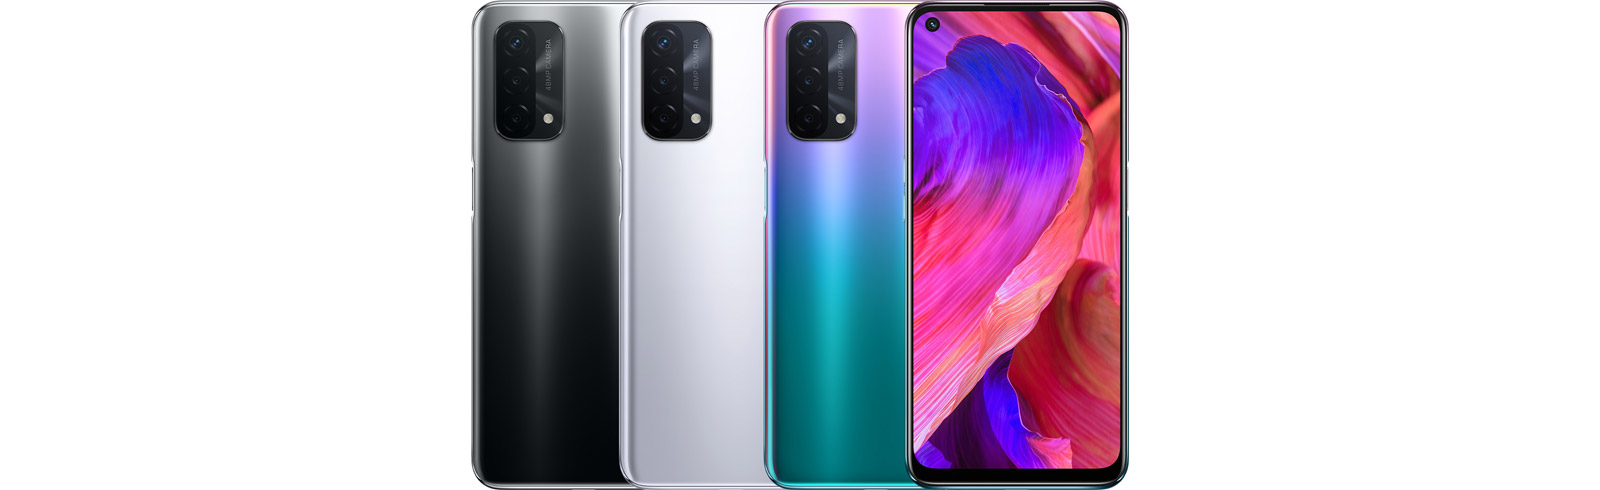 Oppo A93 5G goes official with a Snapdragon 480 chipset